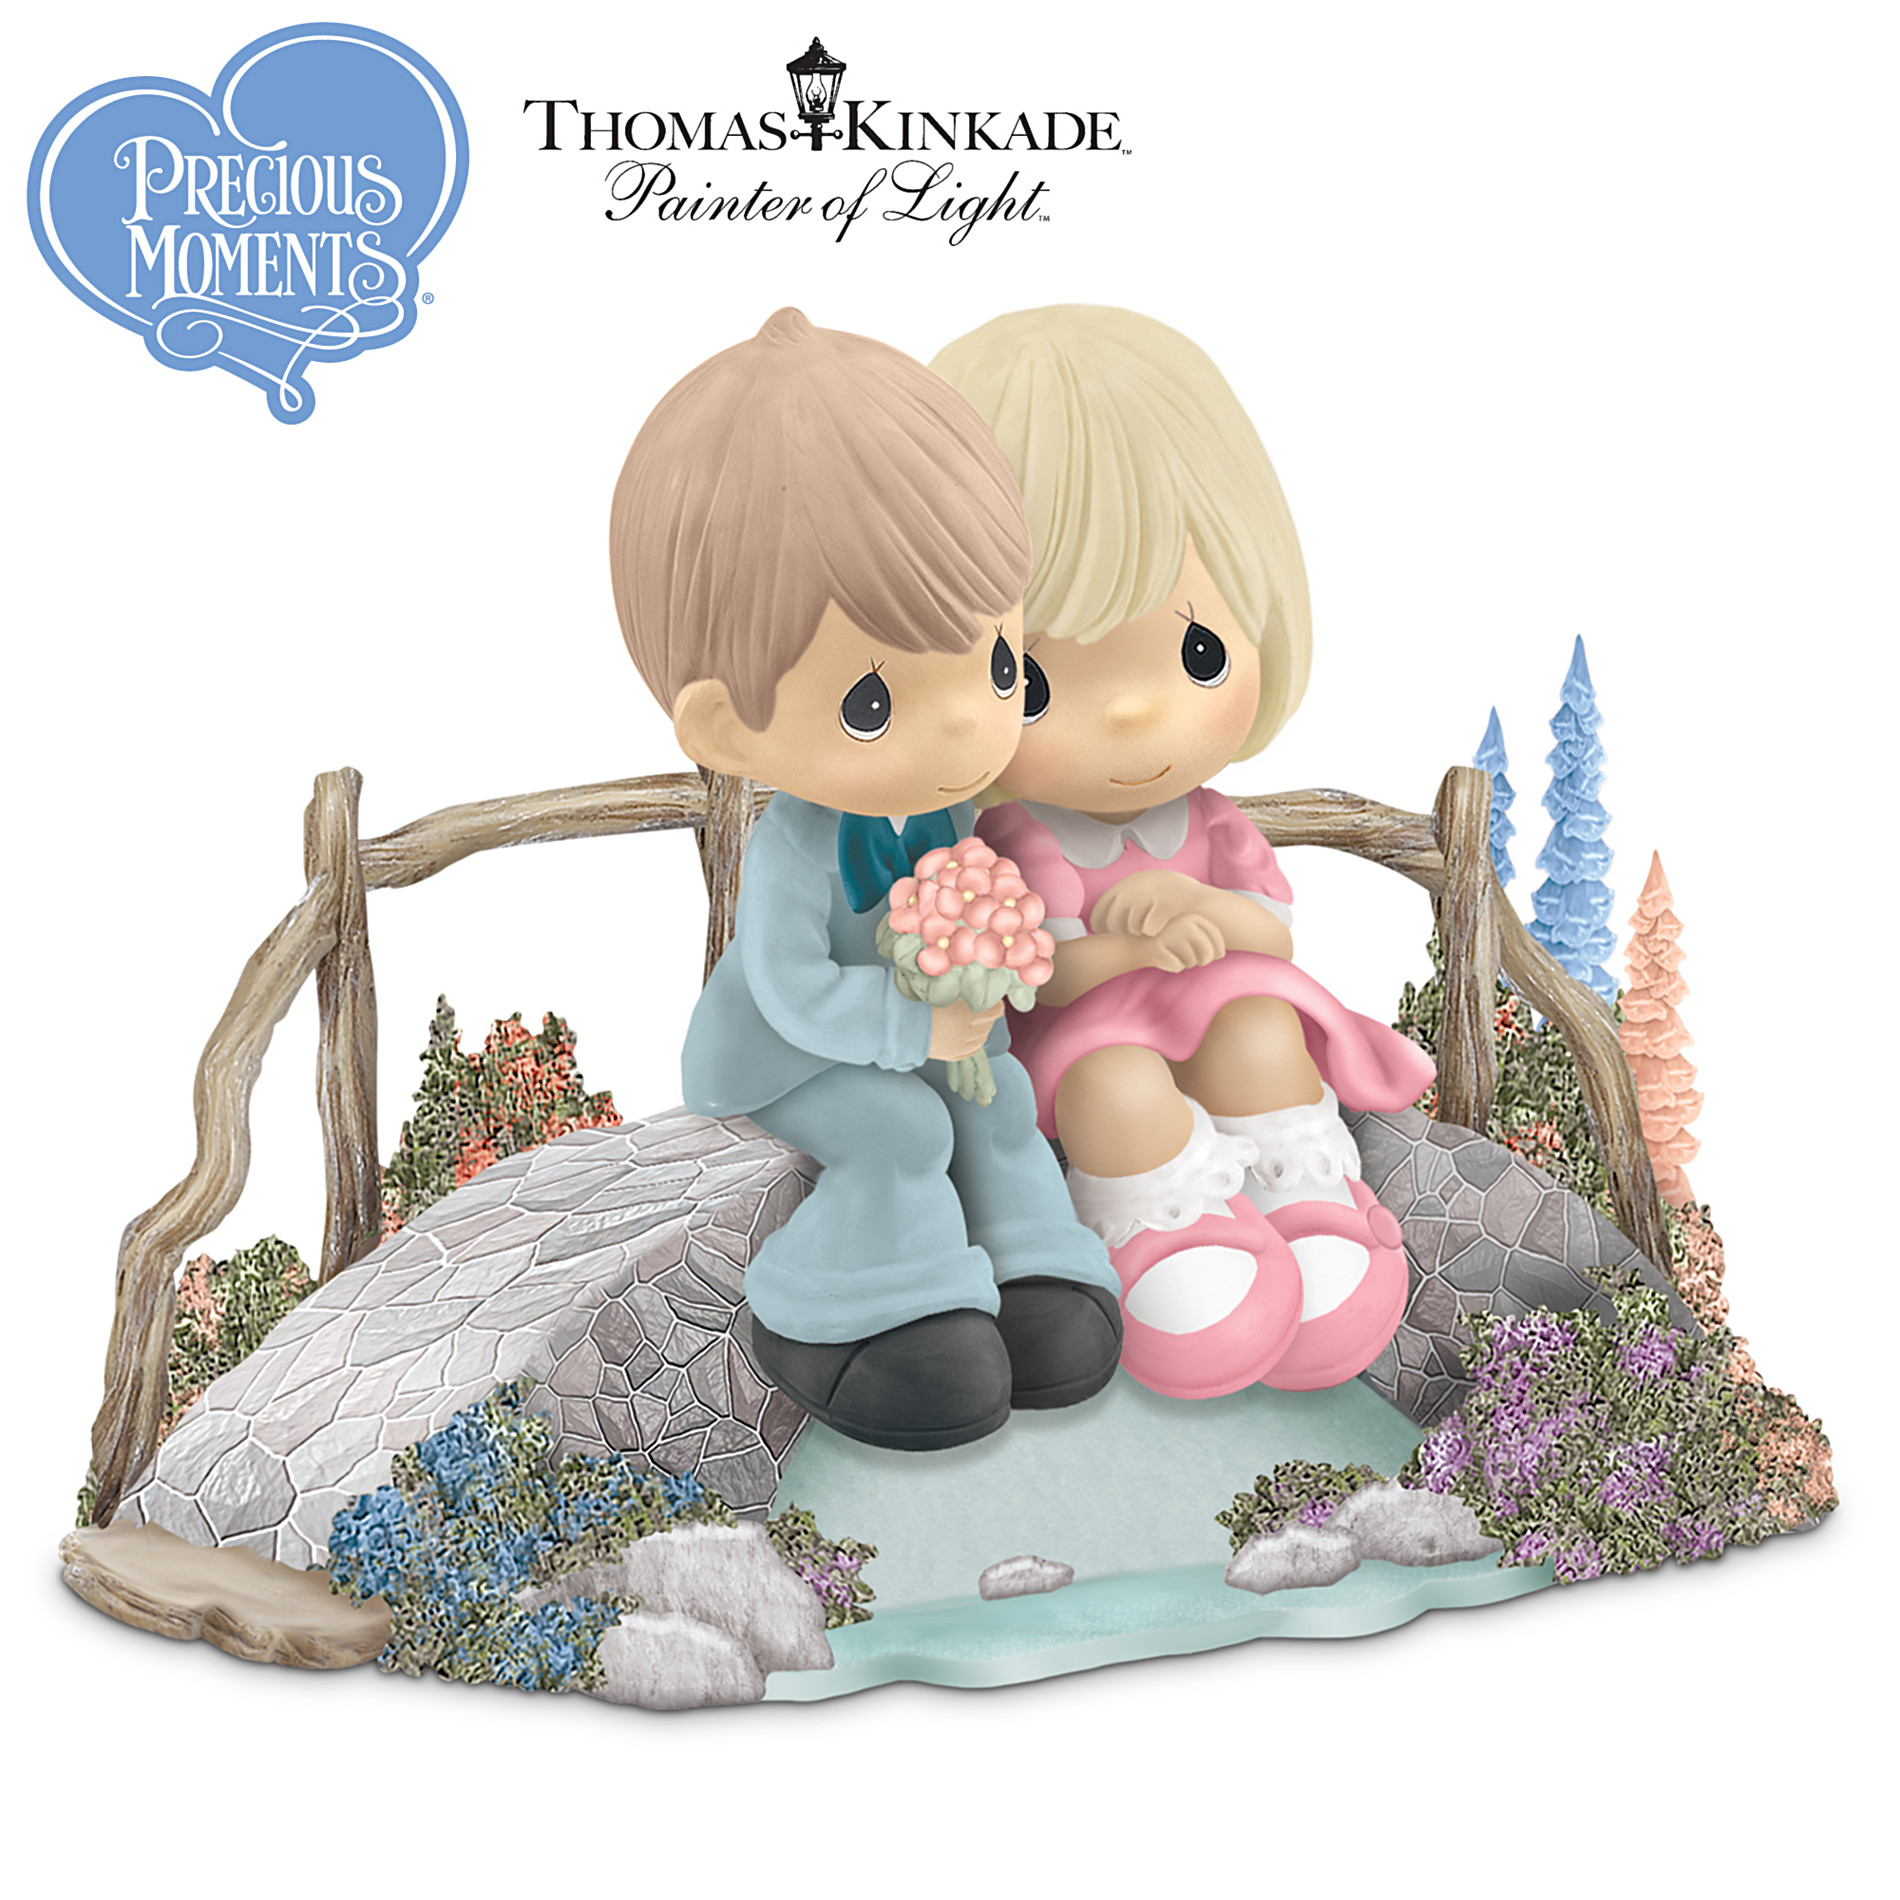 The Hamilton Collection Thomas Kinkade Precious Moments Figurine: Love Bridges Our Hearts at Sears.com